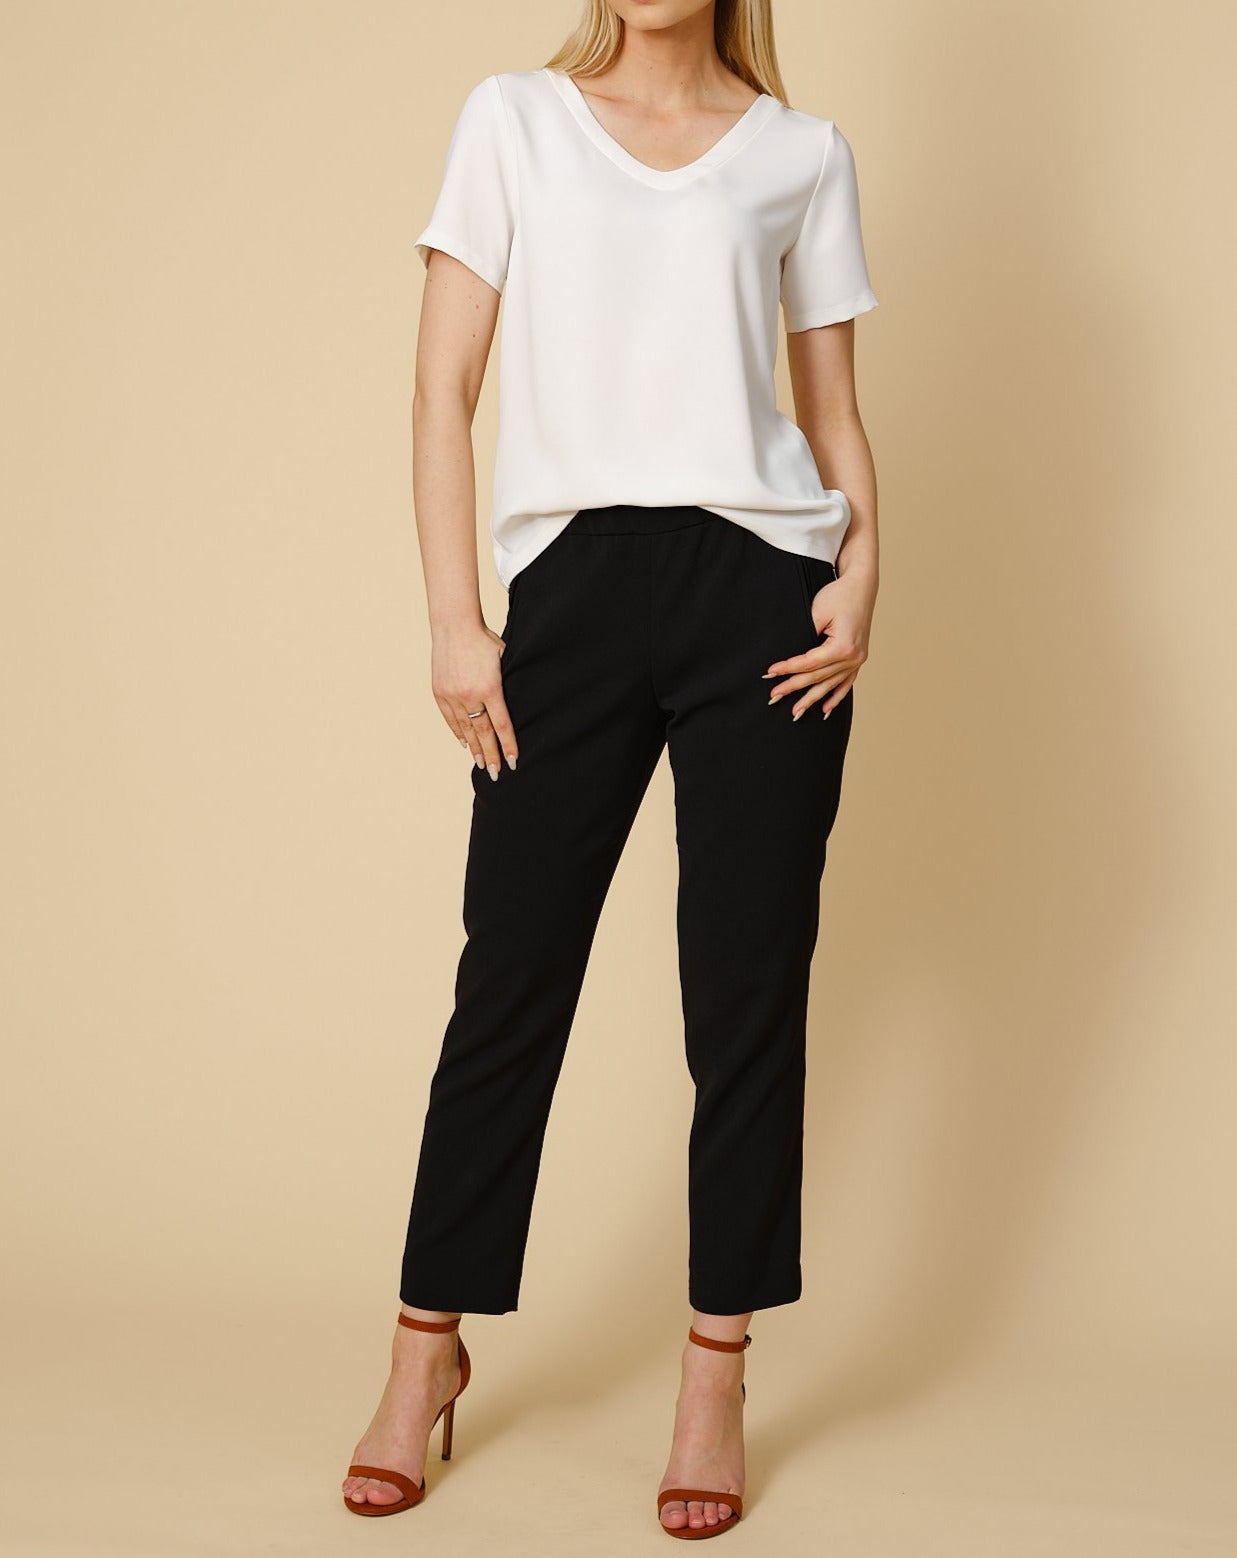 Trousers Mimmi in black